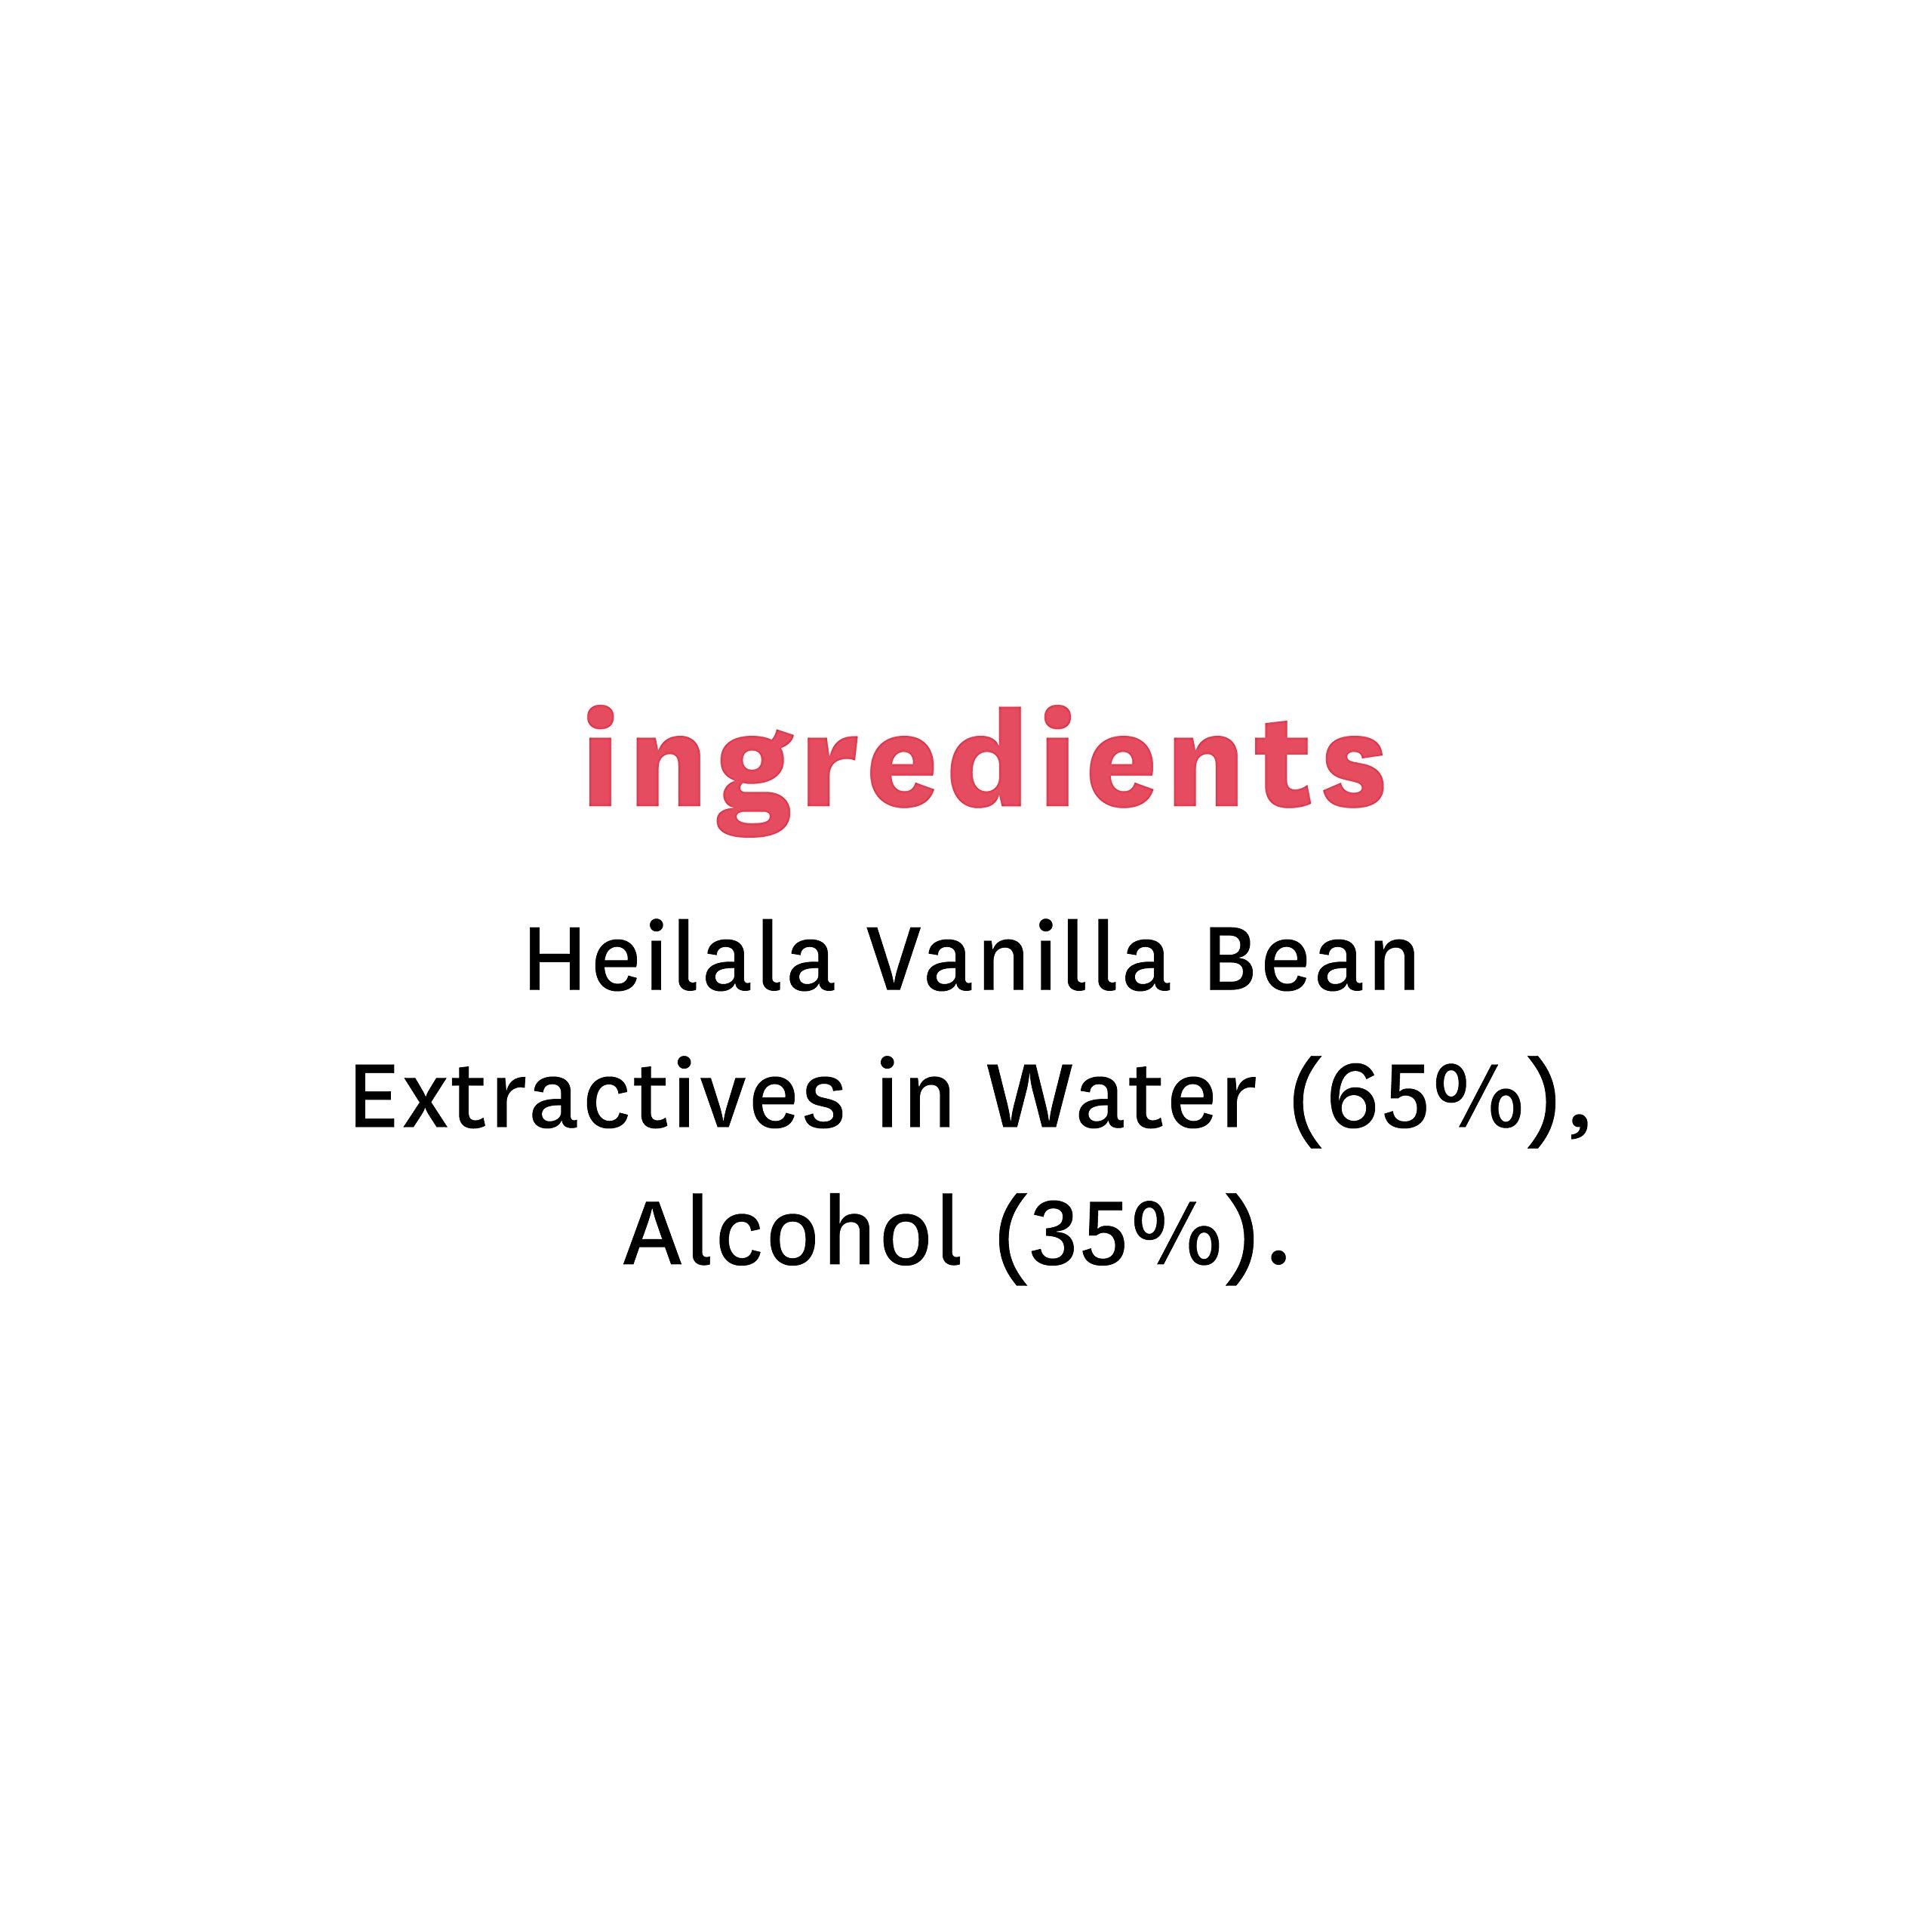 Pure Vanilla Extract for Baking - Gourmet Quality Organically Grown, No Sugar, No Imitation Flavors, No Chemicals or Synthetic Flavors - Heilala Vanilla is 100% Pure Vanilla Extract 16.90 fl oz by Heilala Vanilla (Image #6)